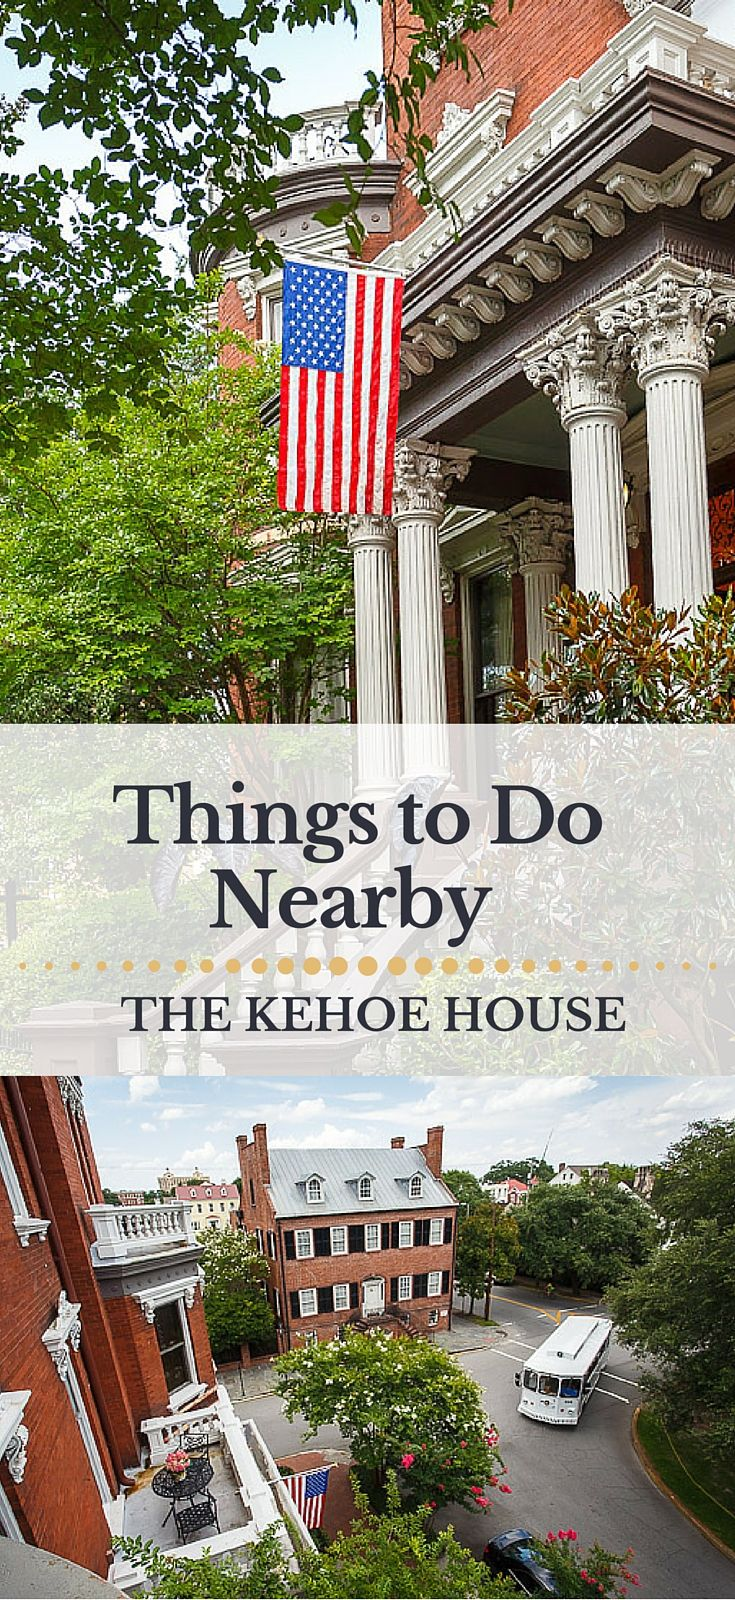 Things to Do in Historic Savannah near The Kehoe House.  From museum homes and squares to shopping and dining, here's a look at what's nearby The Kehoe House on Columbia Square. #kehoehouse